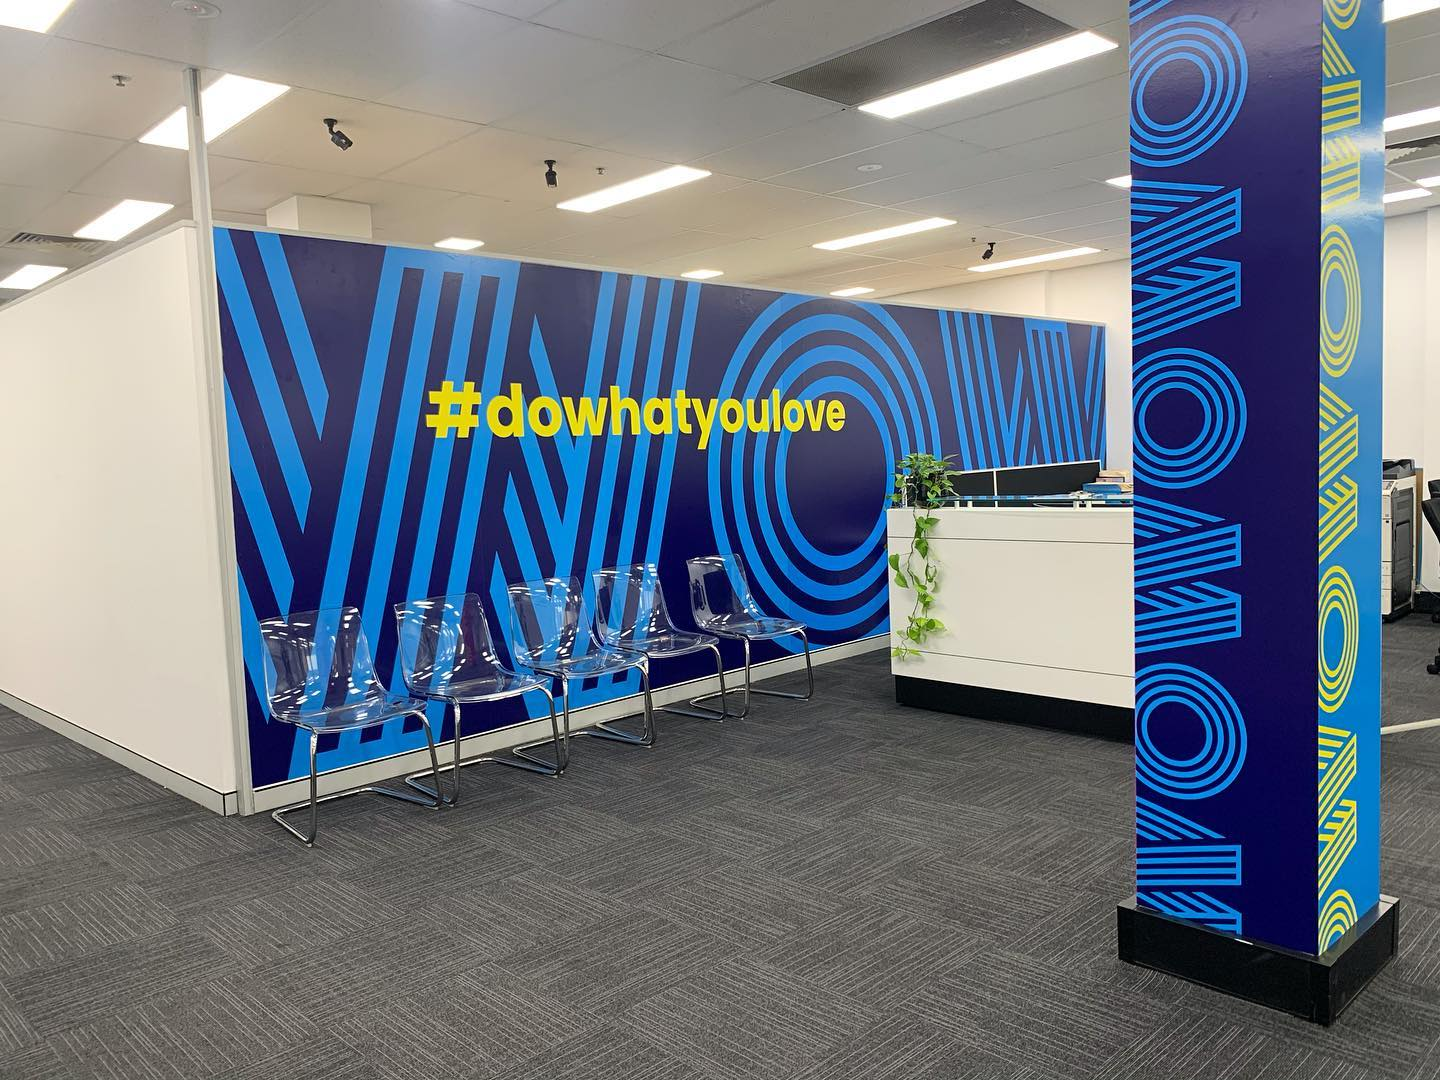 What an incredible surprise to return to in 2020!!!  We have been working on our rebrand for just under a year and can't believe it's almost ready to share with you all. We have redefined our brand identity to align with our vision and our core values. Here's the first look at our new reception area #dowhatyoulove